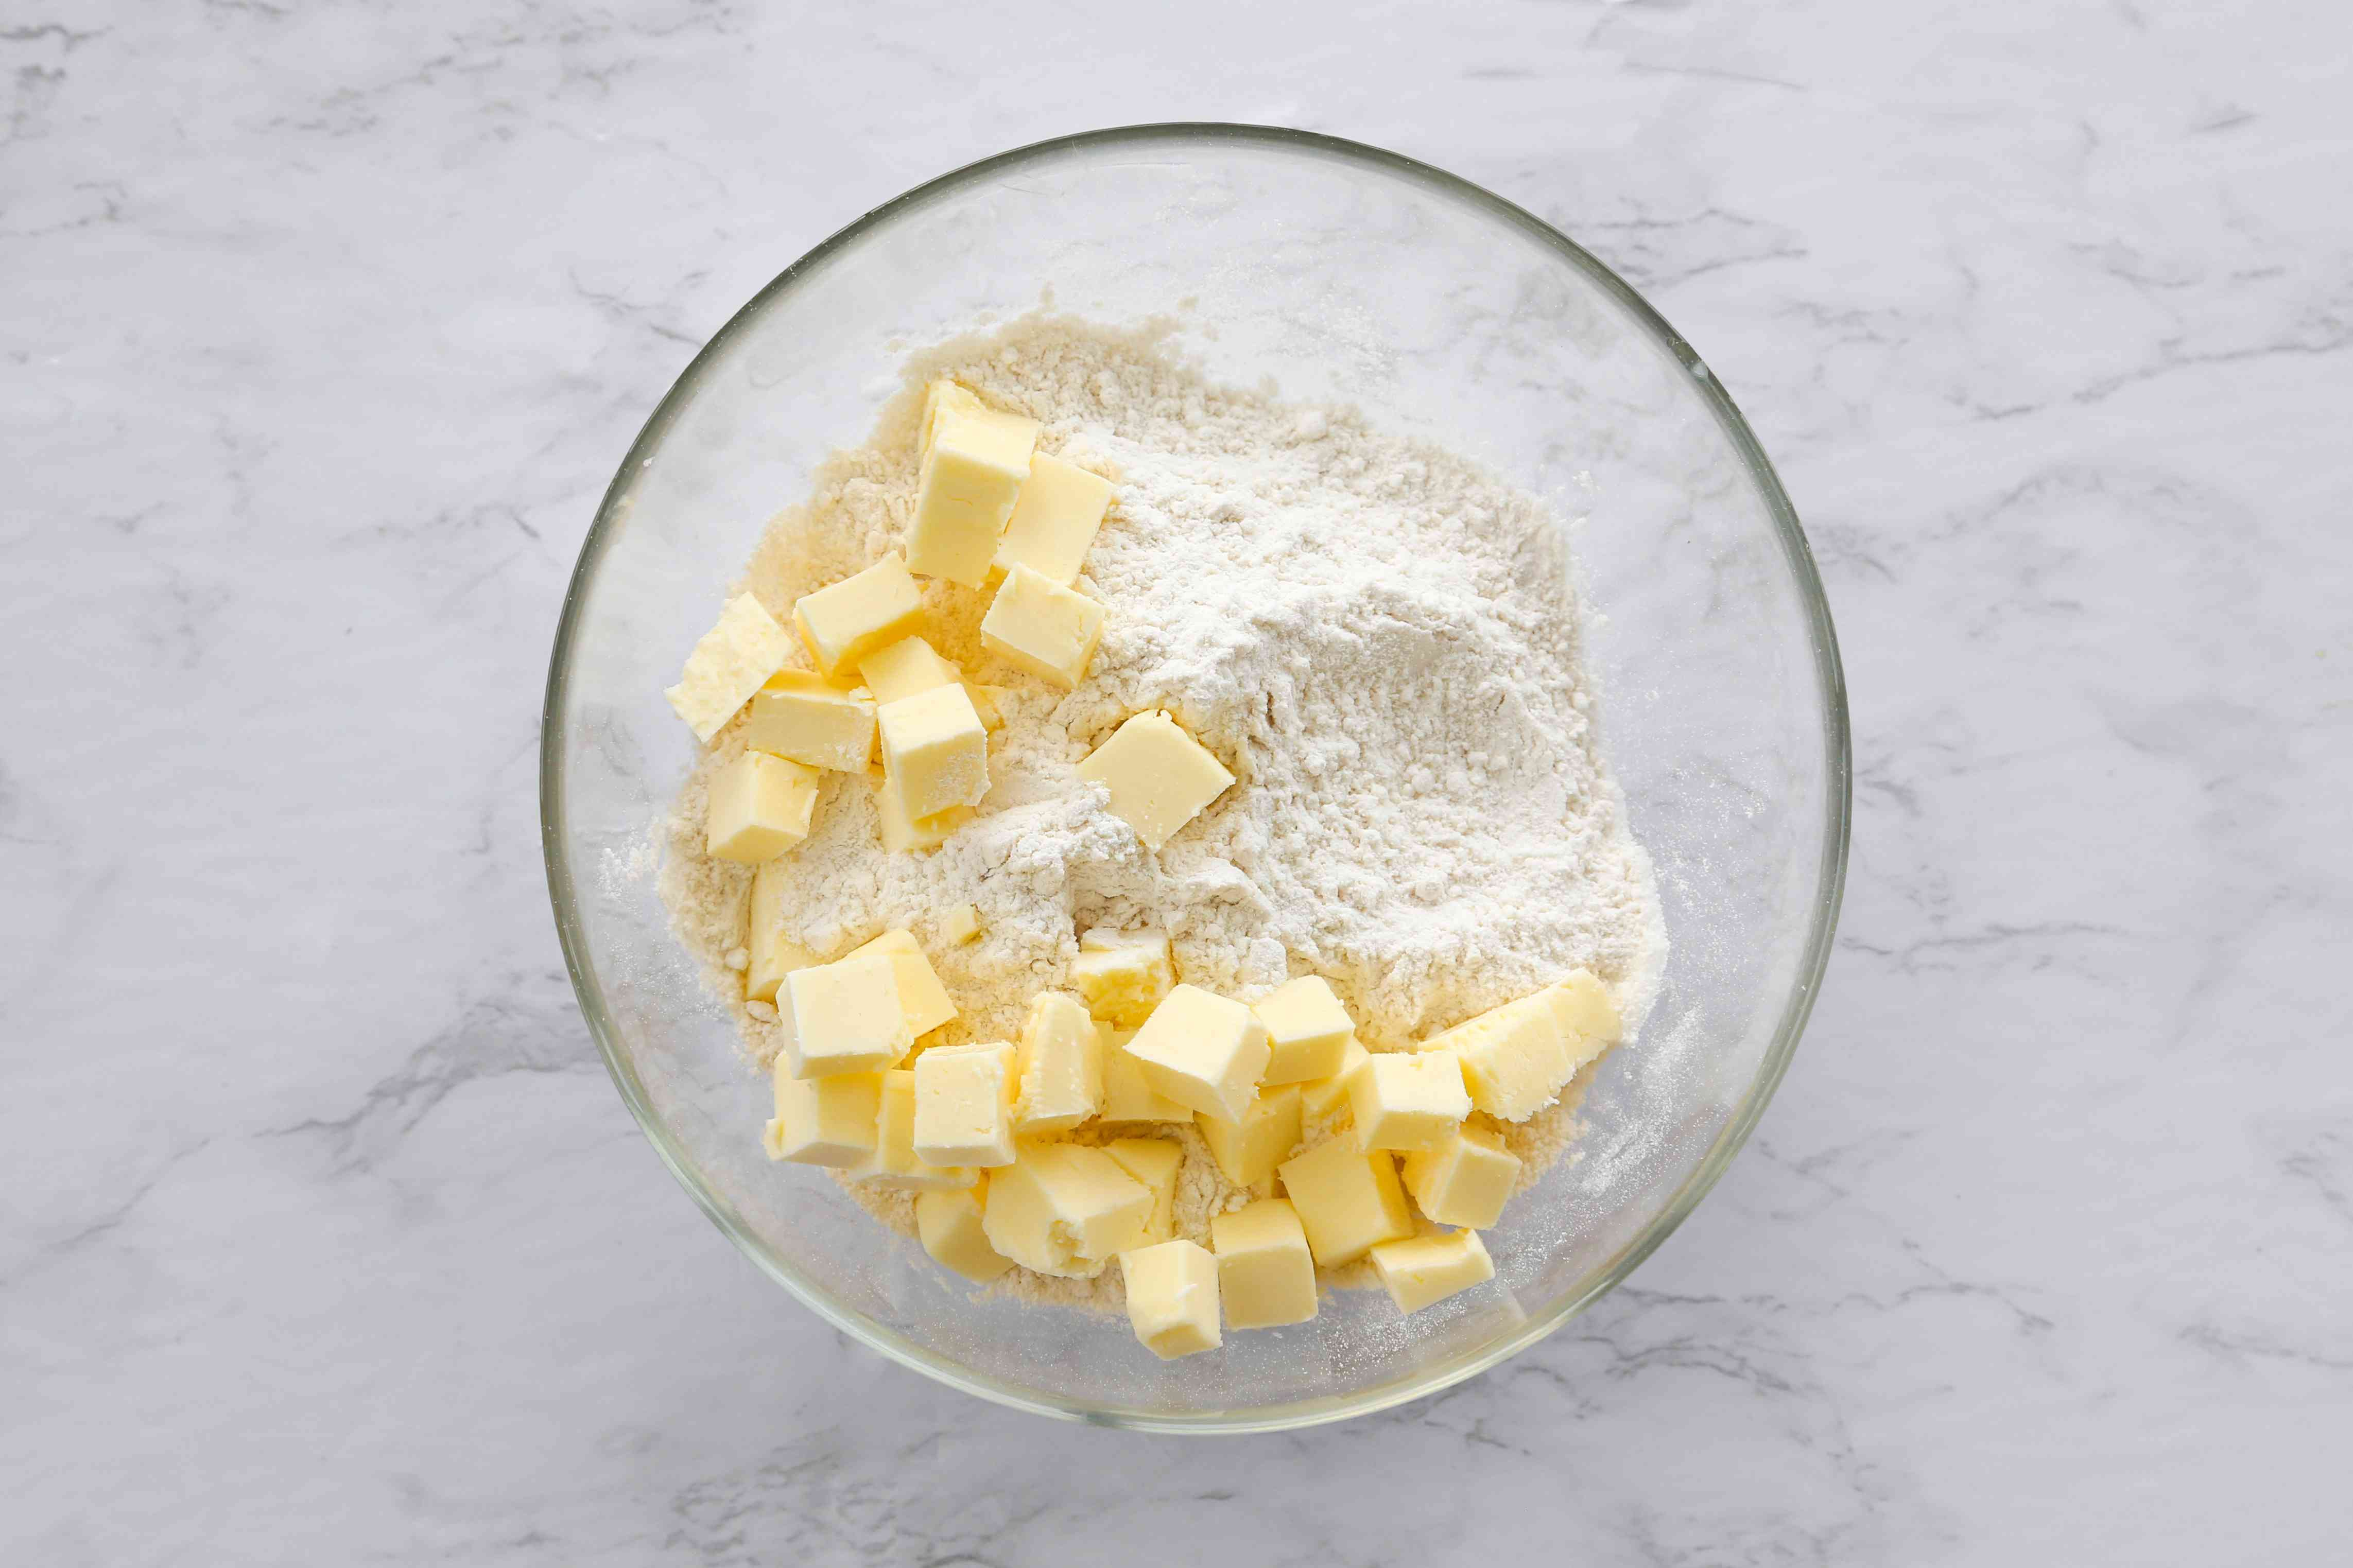 Flour, butter, and salt in a large, clean bowl